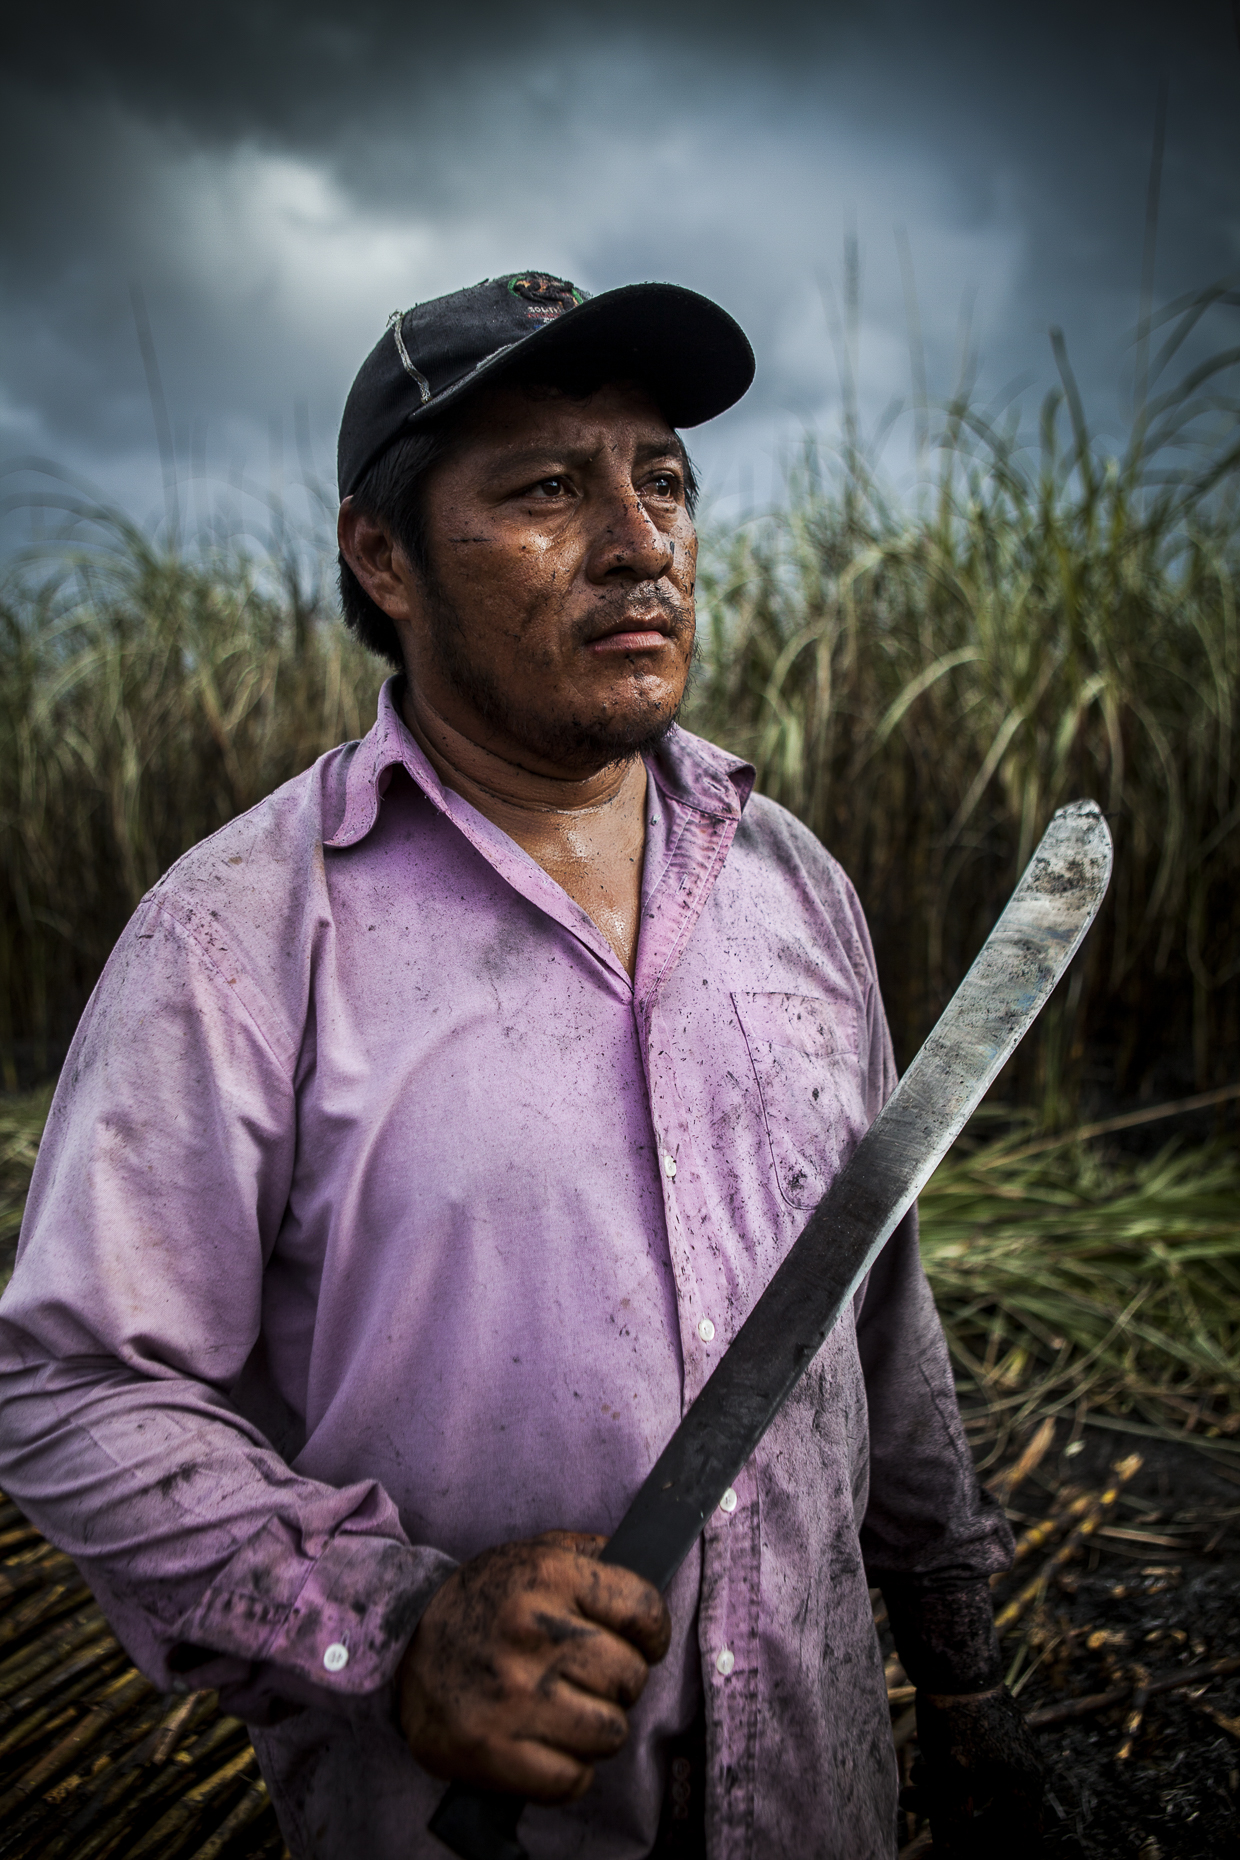 Fair trade sugar cane farmer, Belize